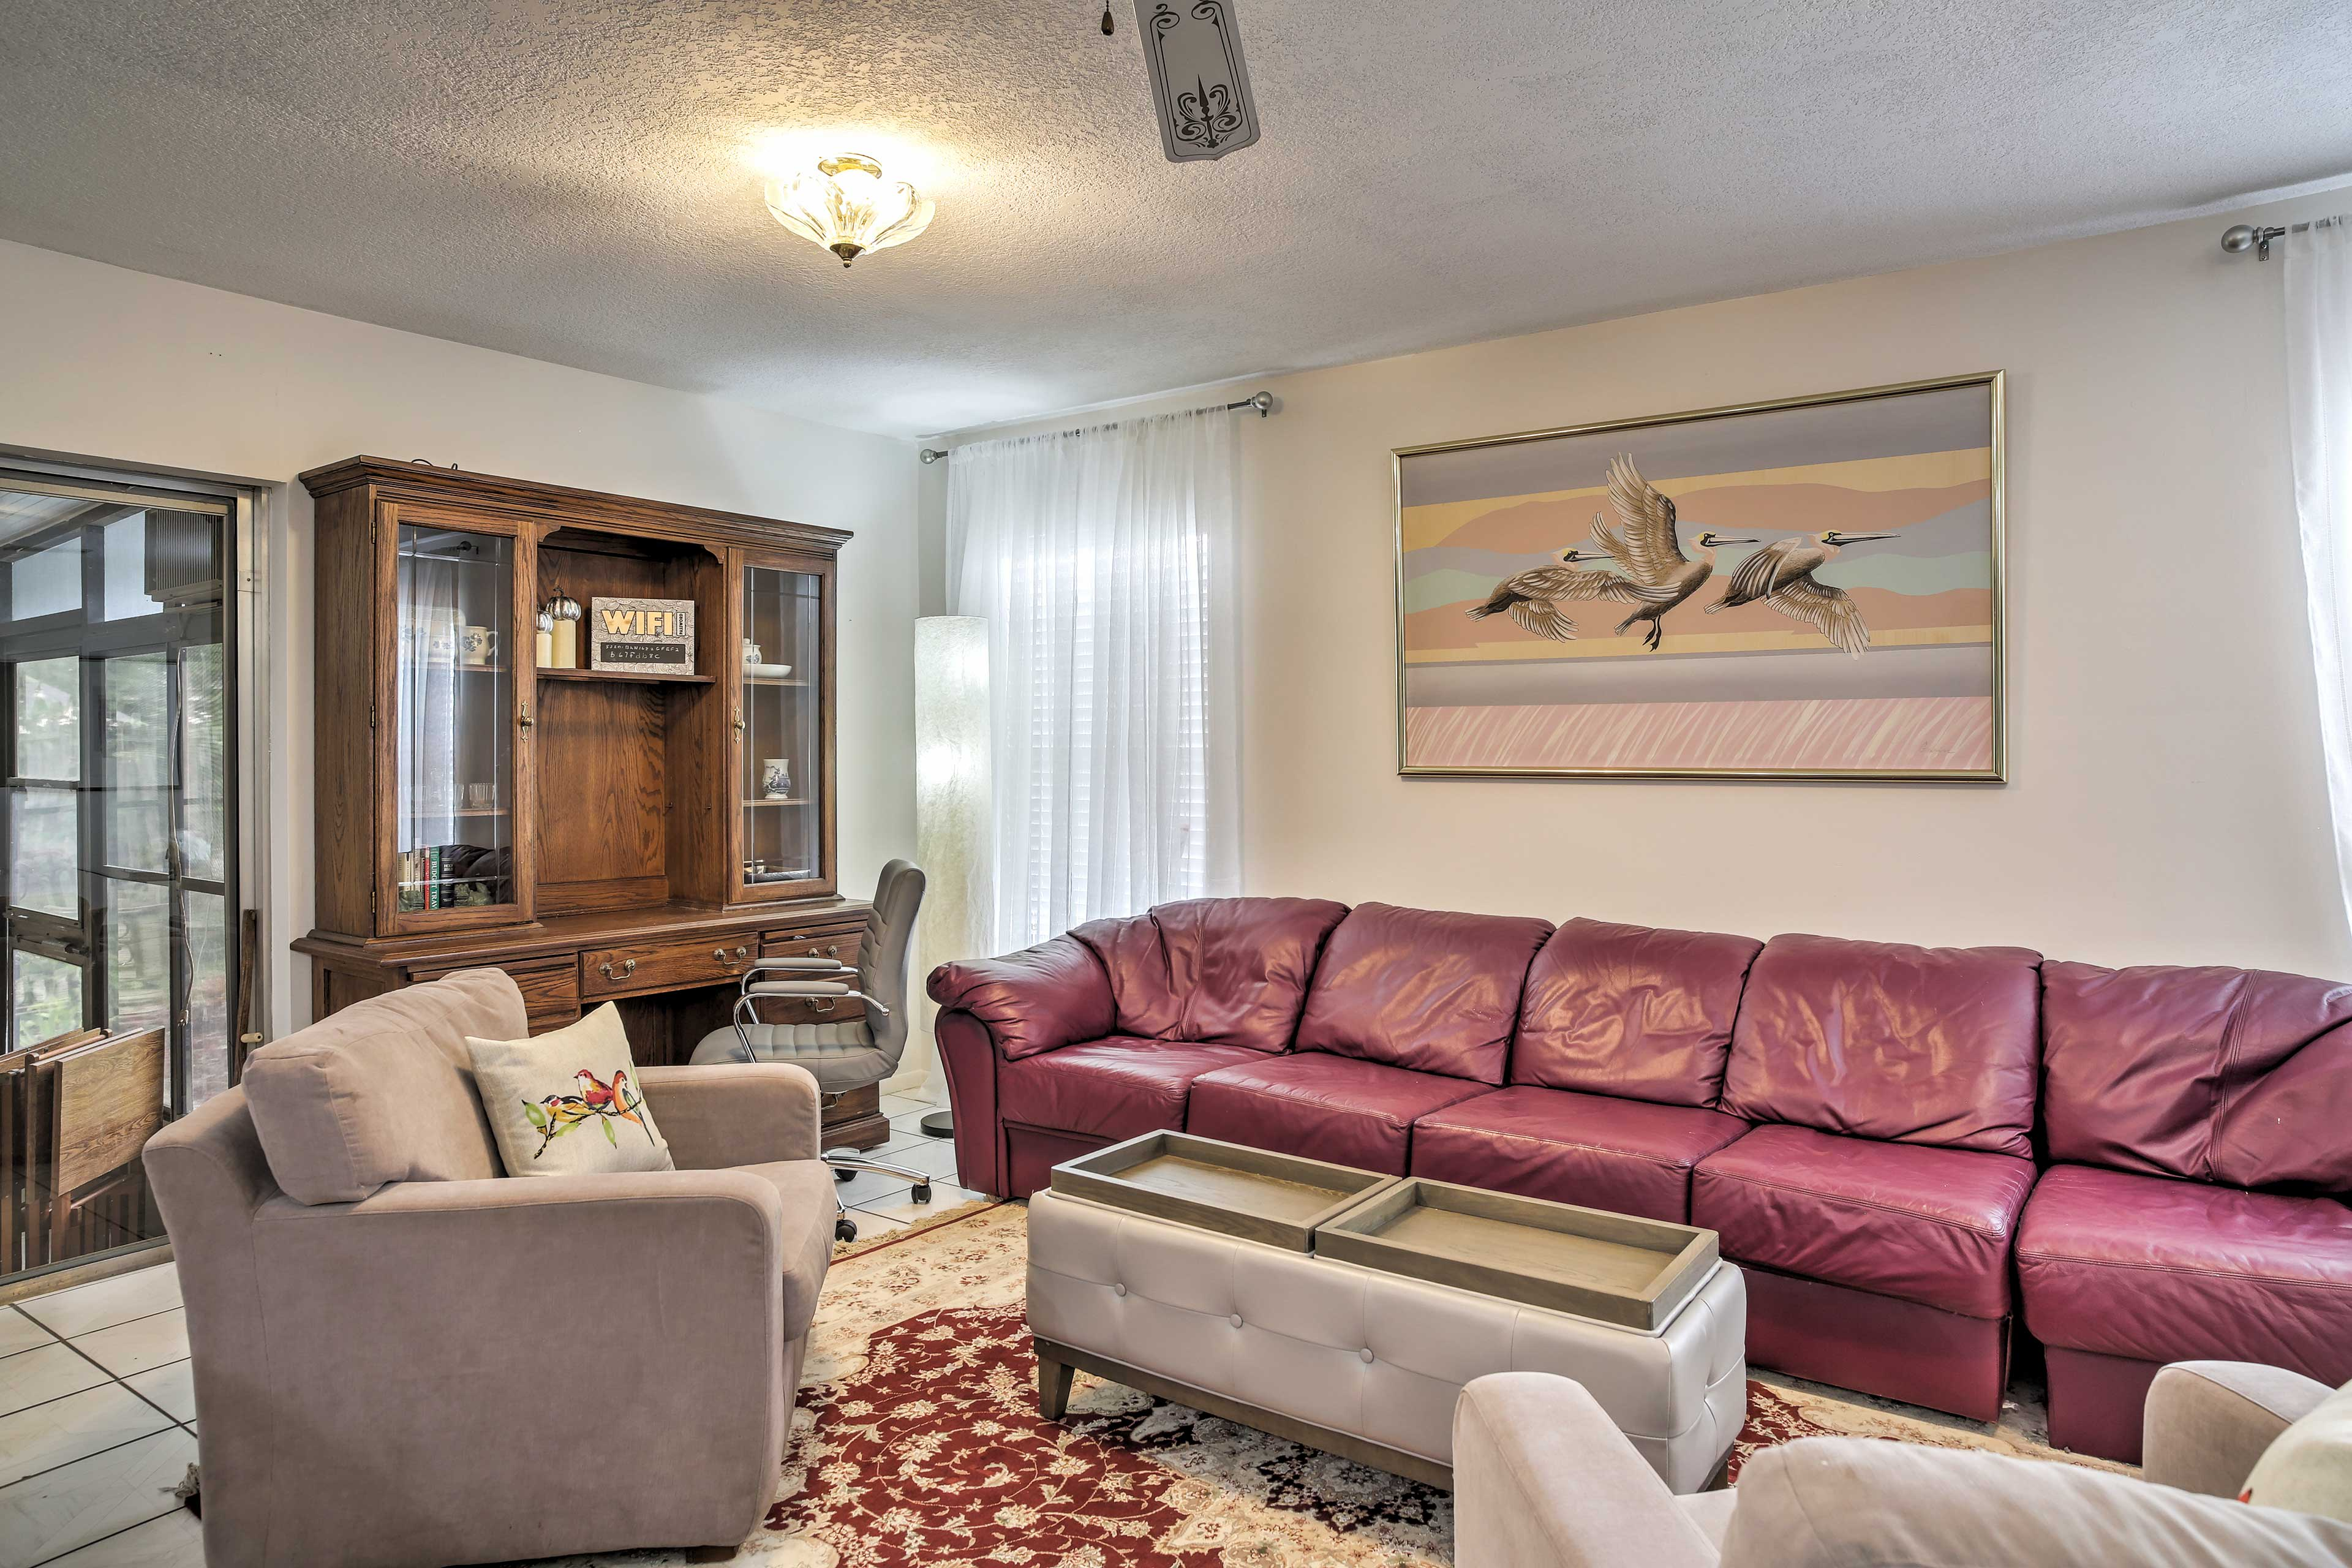 Step into the well-appointed living space and make yourself at home.